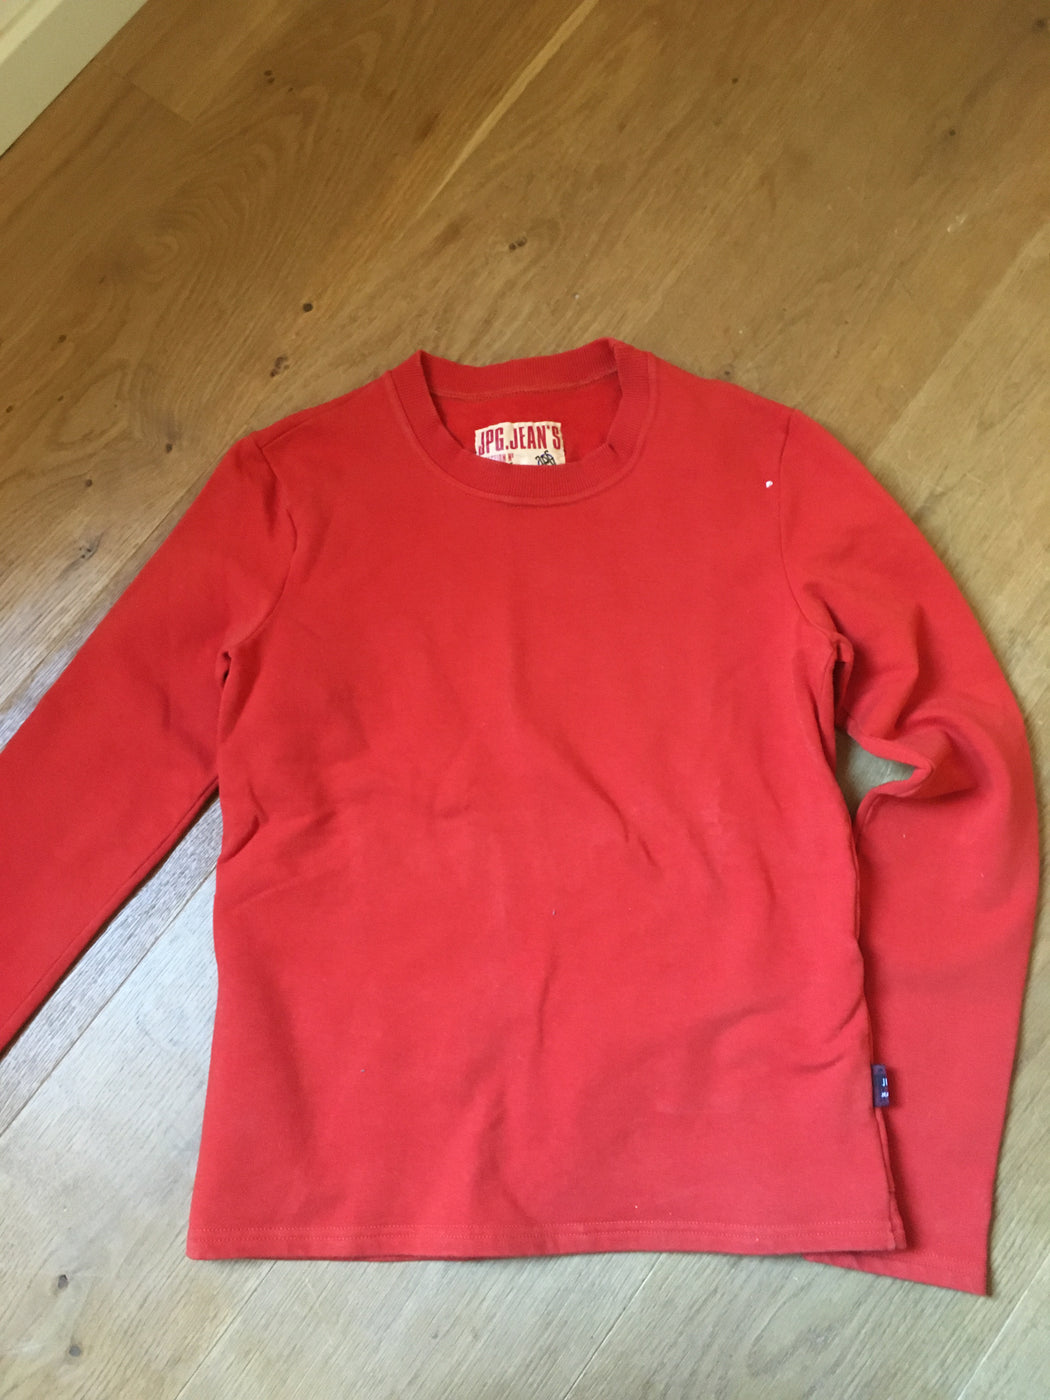 Red Cotton Jpg By Gaultier Sweatshirt Oversized Pocket Size XS/S